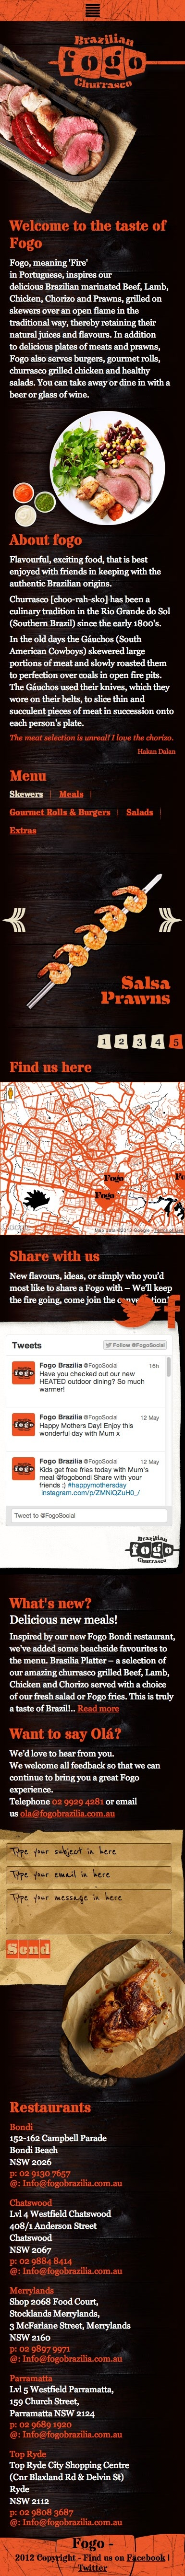 we did this for fogo's mobile version of their website